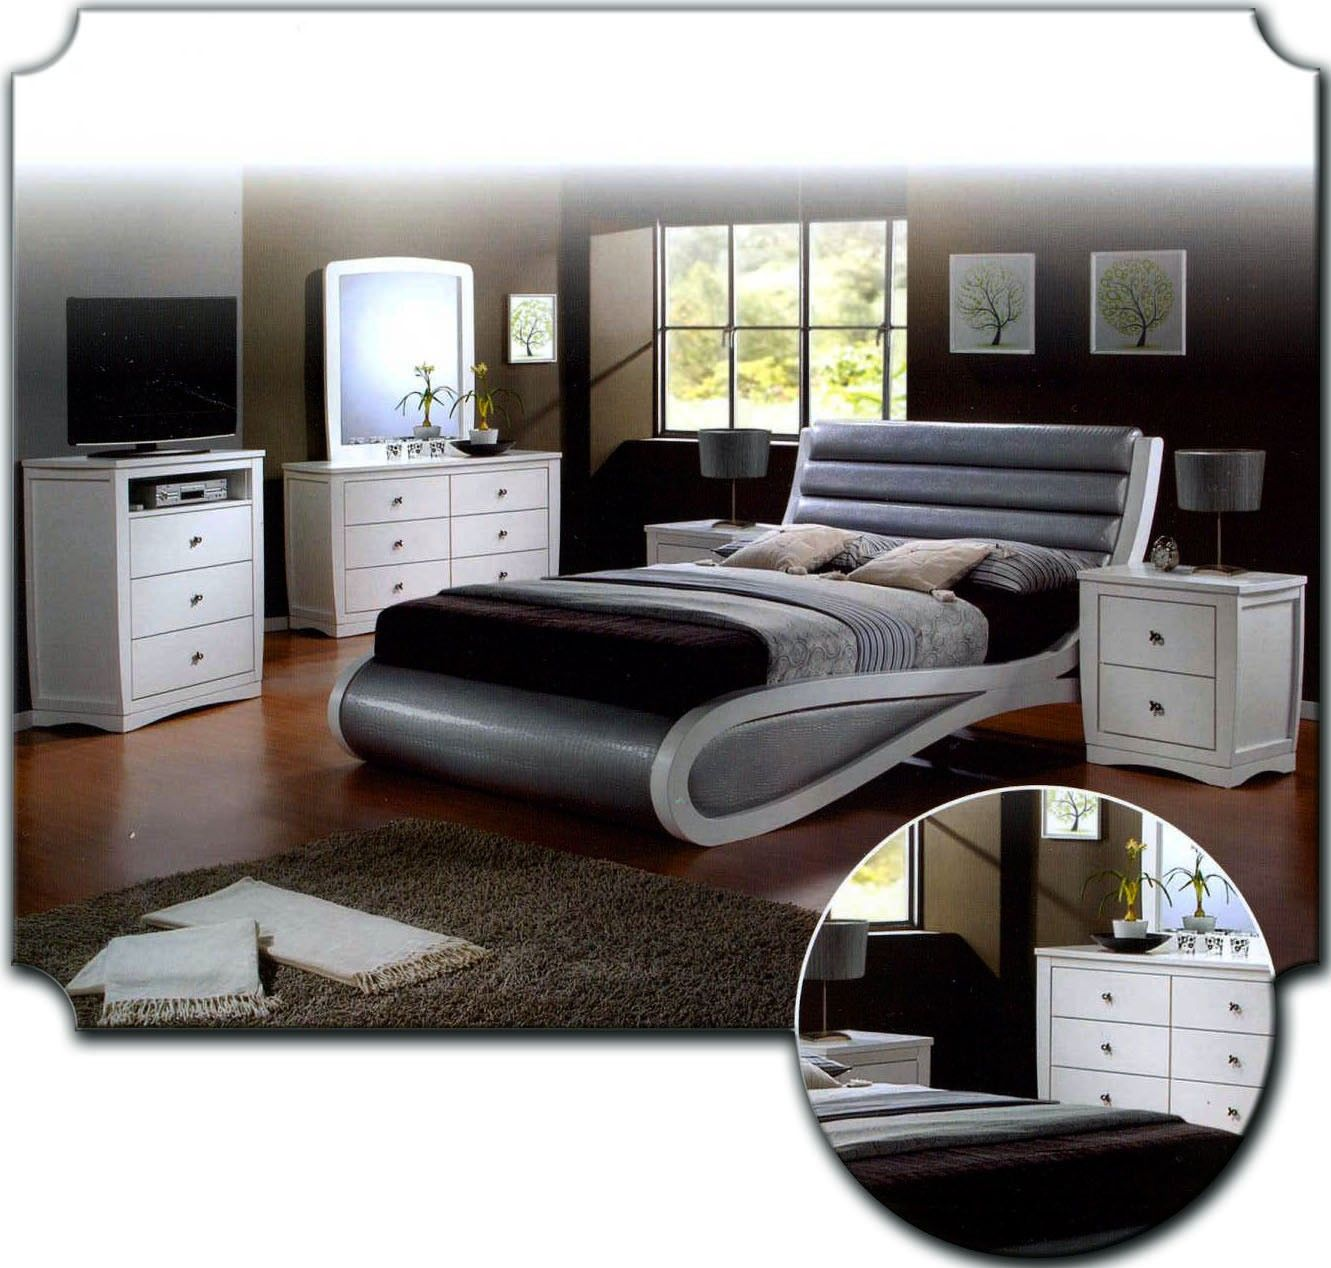 Bedroom-Ideas-For-Teenage-Guys-Teen-Platform-Bedroom-Sets ... on Teenage Room Colors For Guys  id=77469